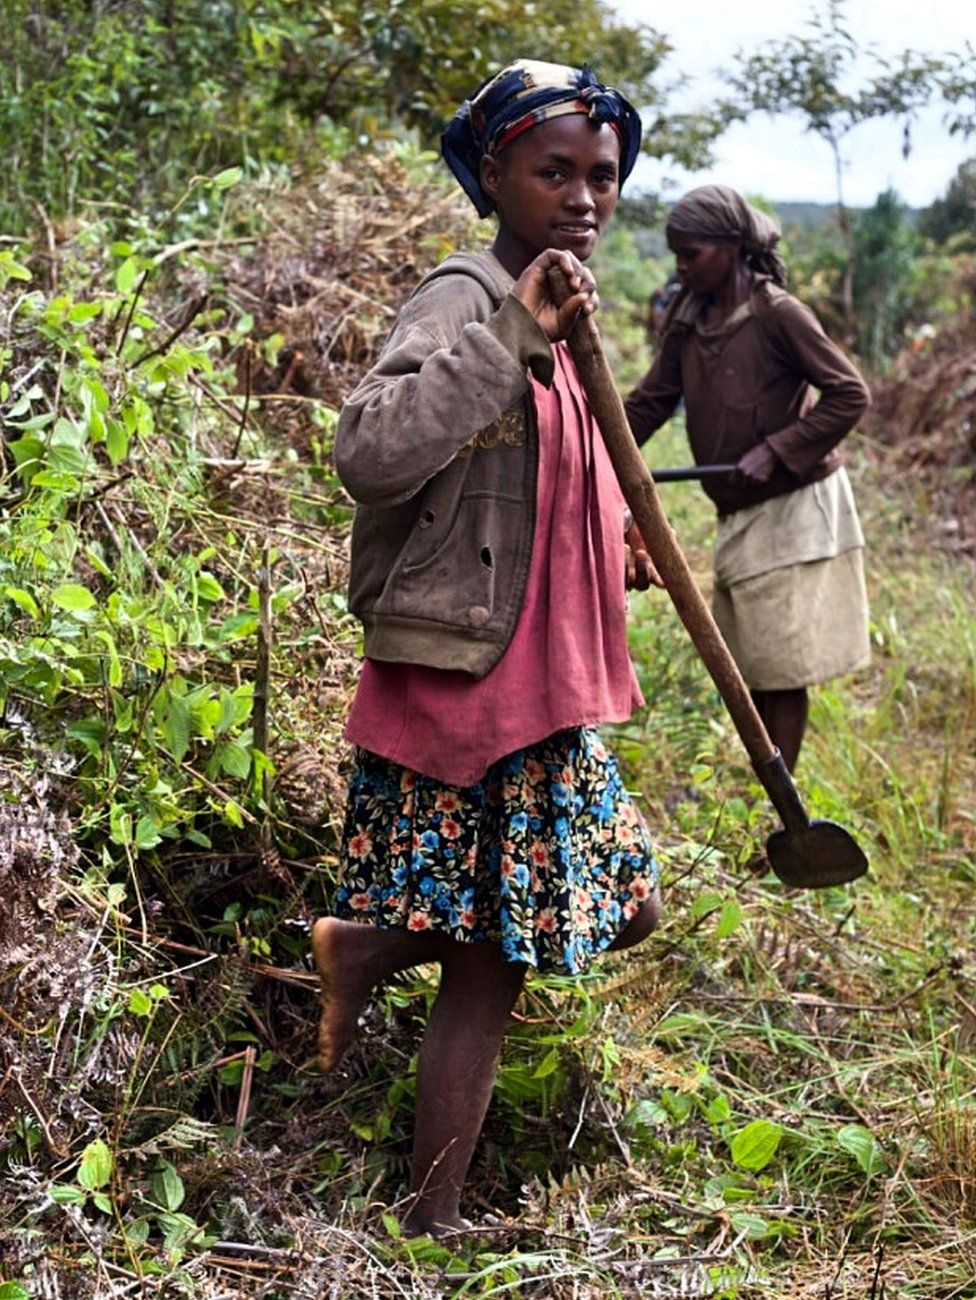 Village residents are employed in forest restoration projects